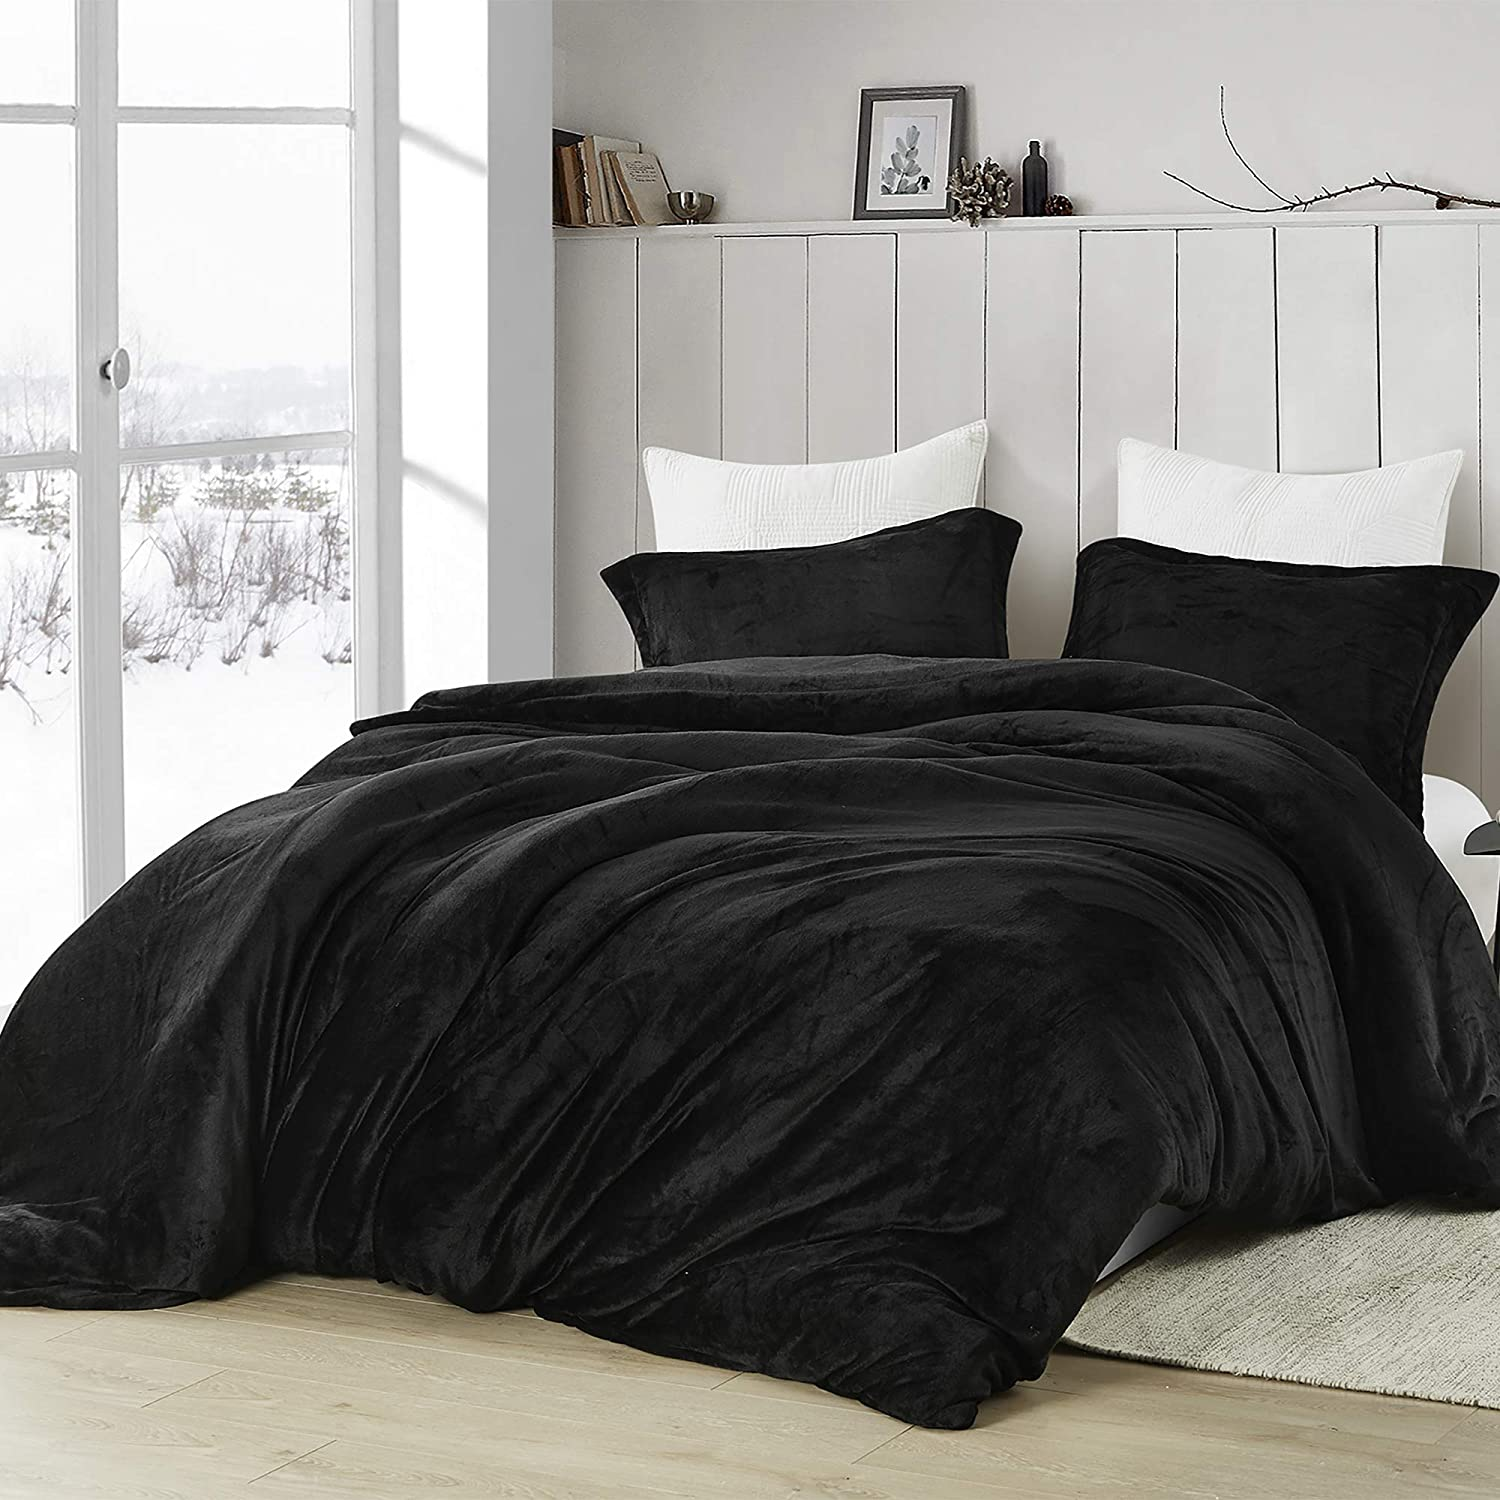 Byourbed Coma 卓出 Inducer King Duvet Touchy Black 安心の実績 高価 買取 強化中 Cover - Feely